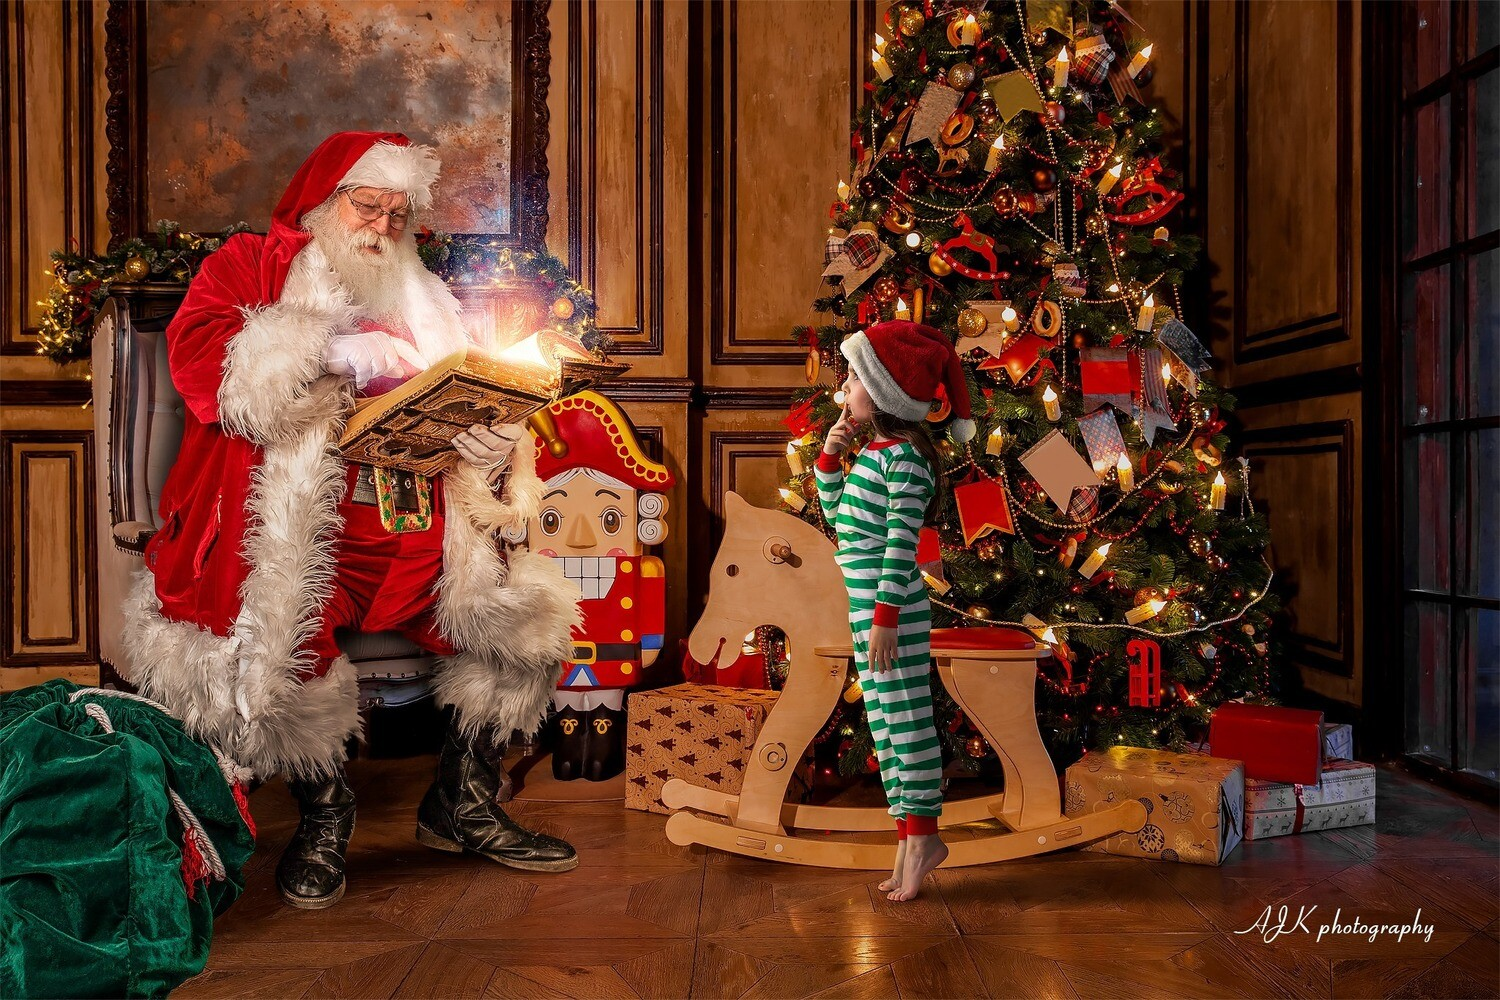 Santa in Chair in Warm Room Reading by Fireplace with Rocking Horse - Santa with Scroll - The Good List - Christmas Holiday Digital Background Backdrop